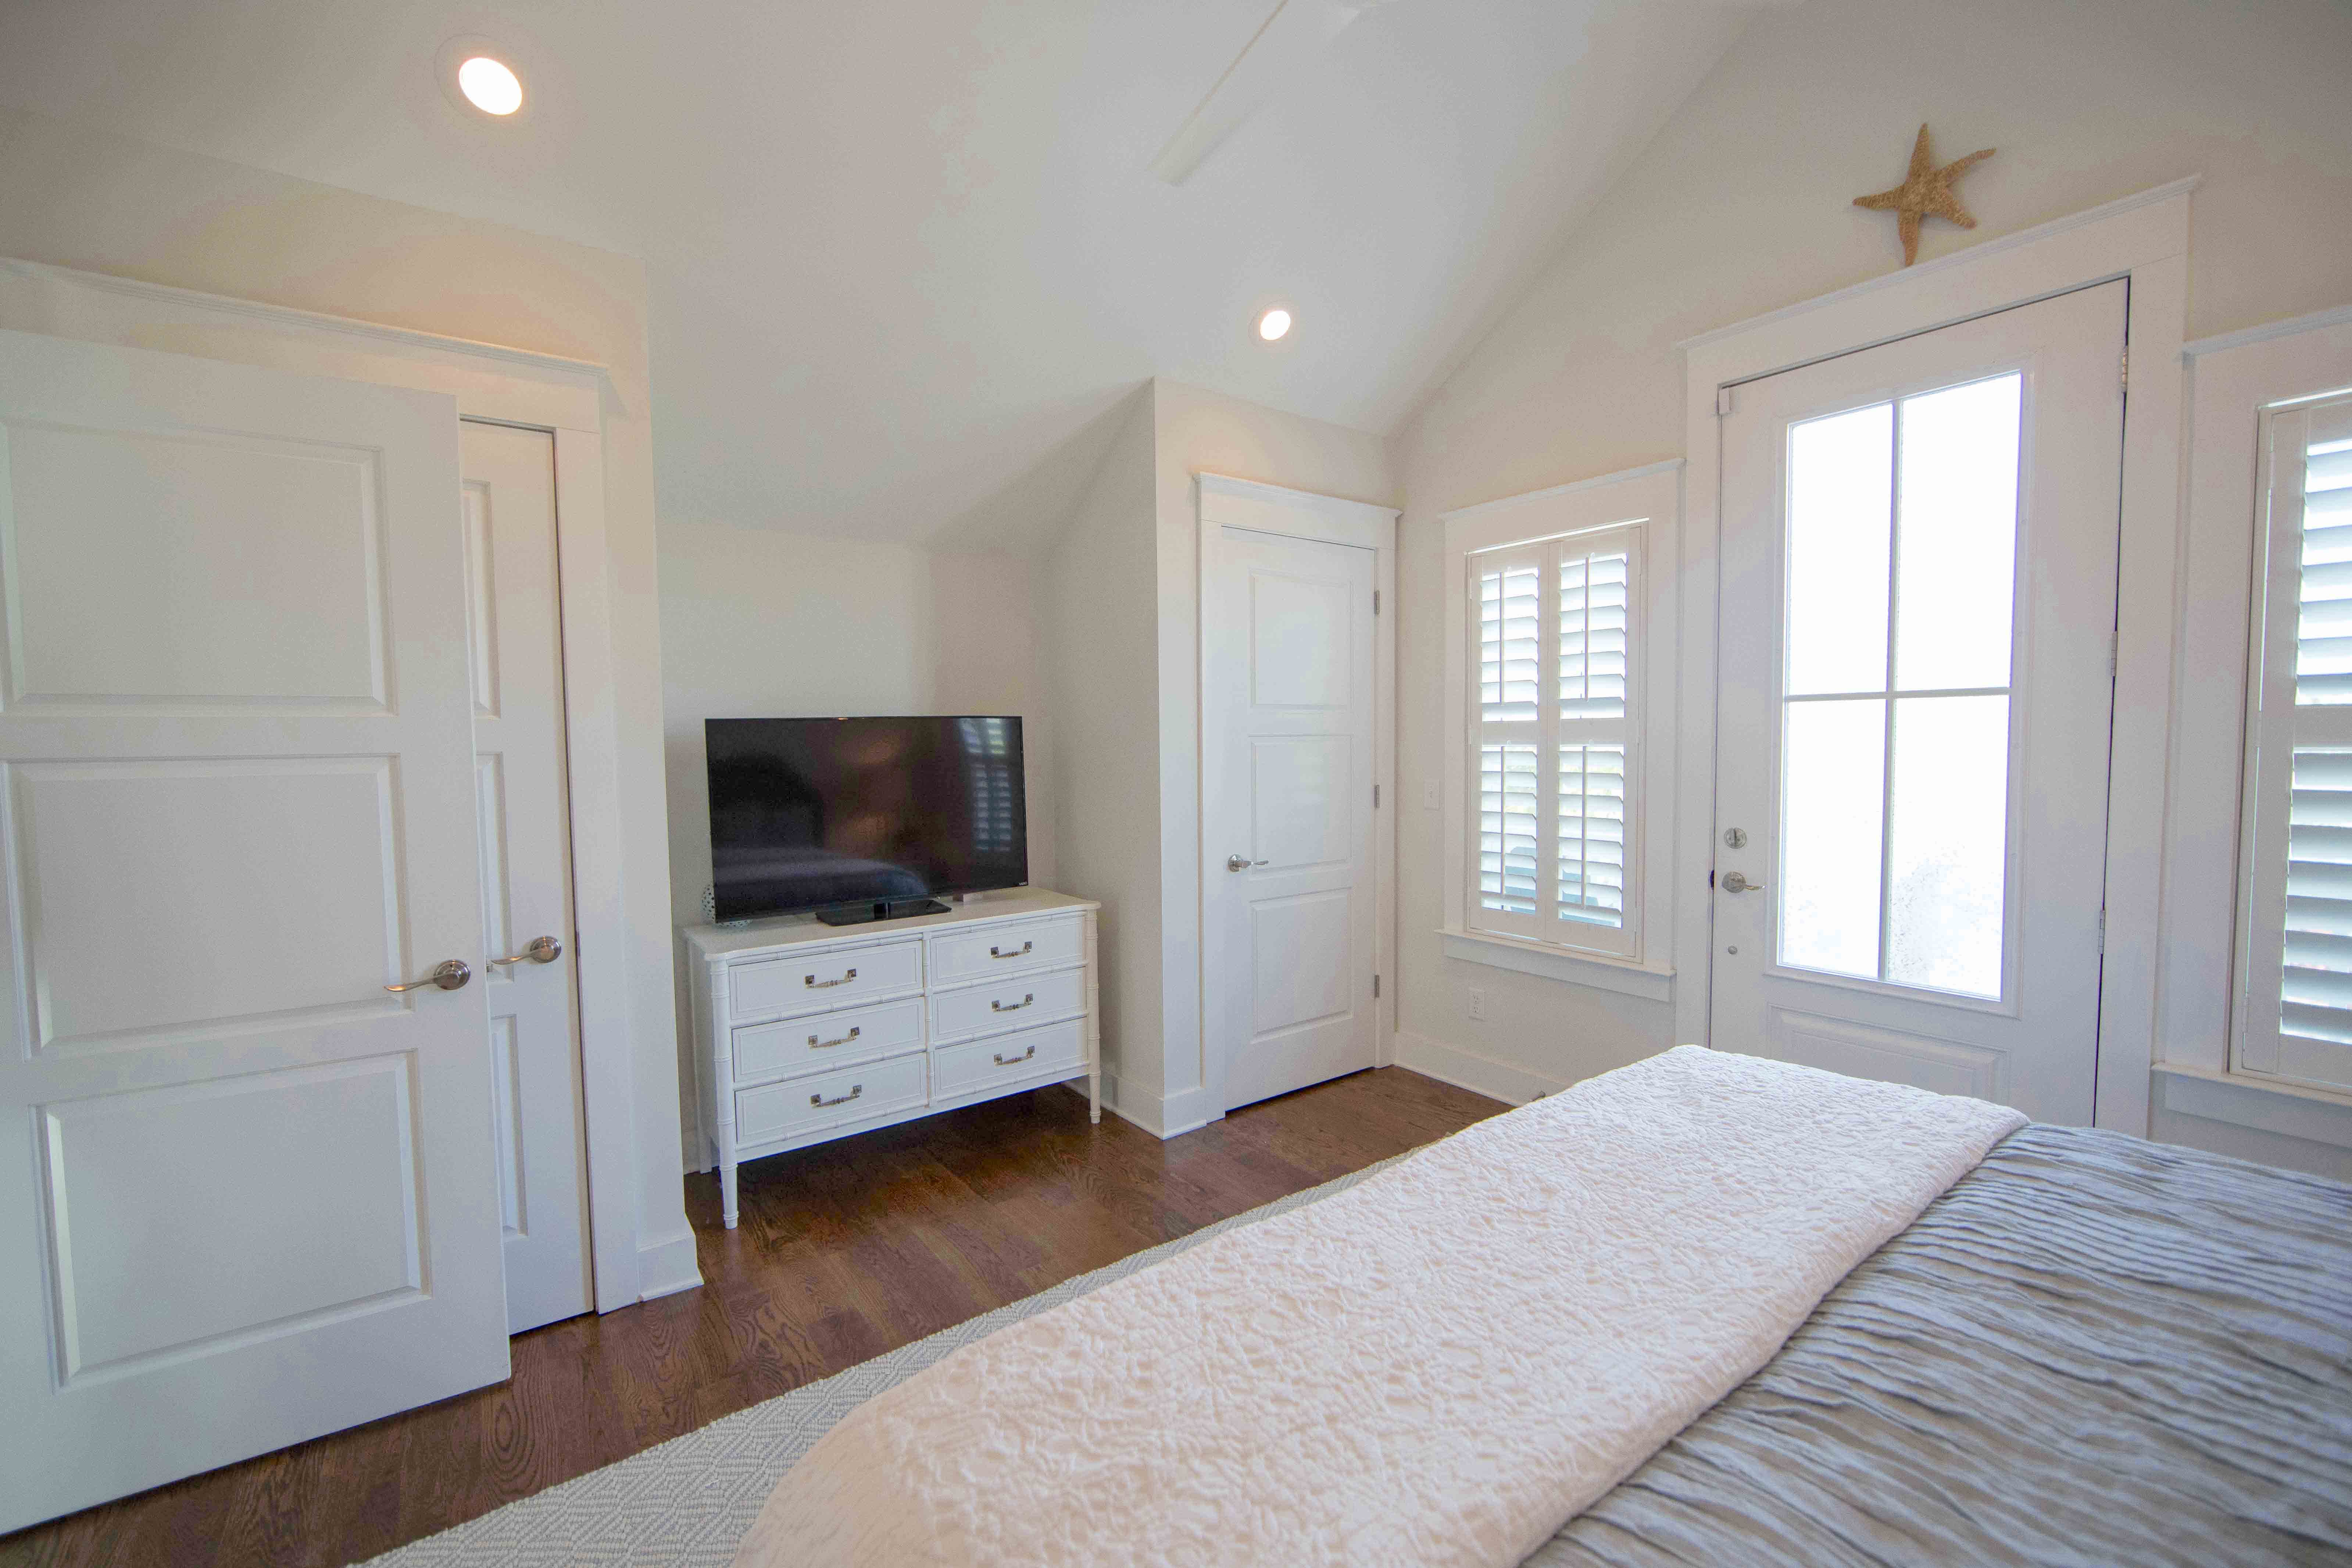 Plenty of closet space in this home